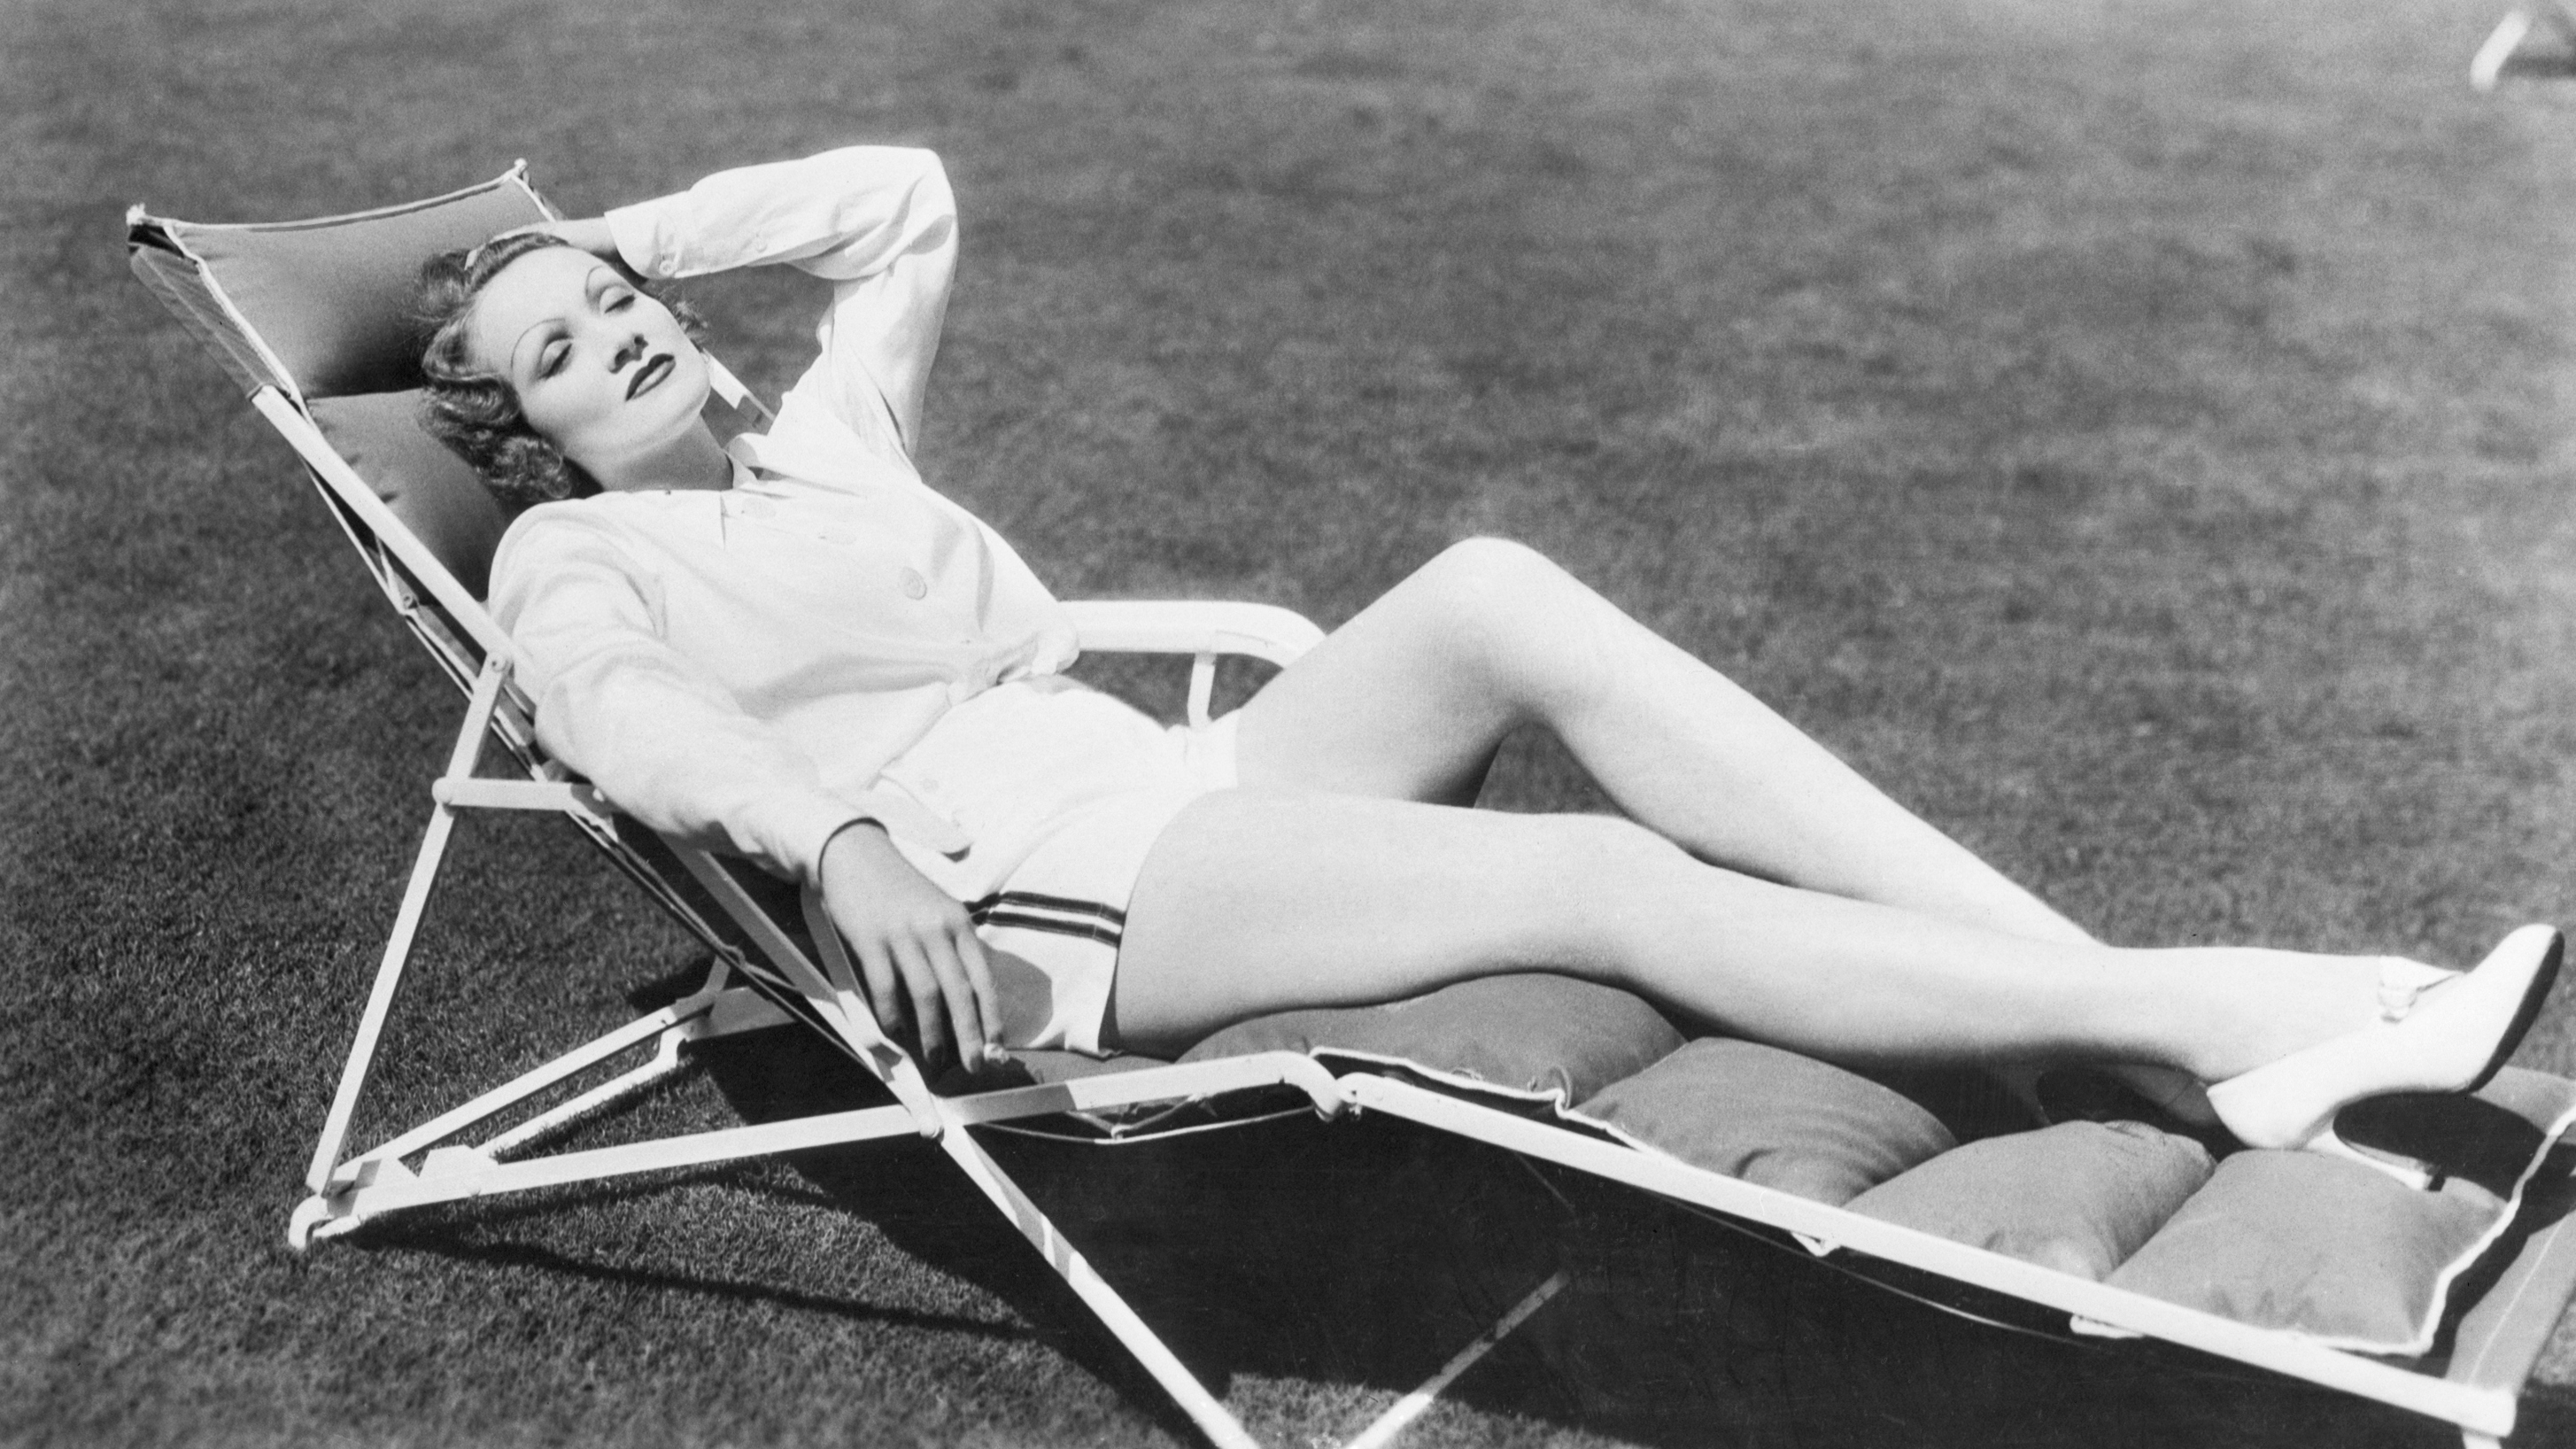 A woman lounging on a chair.